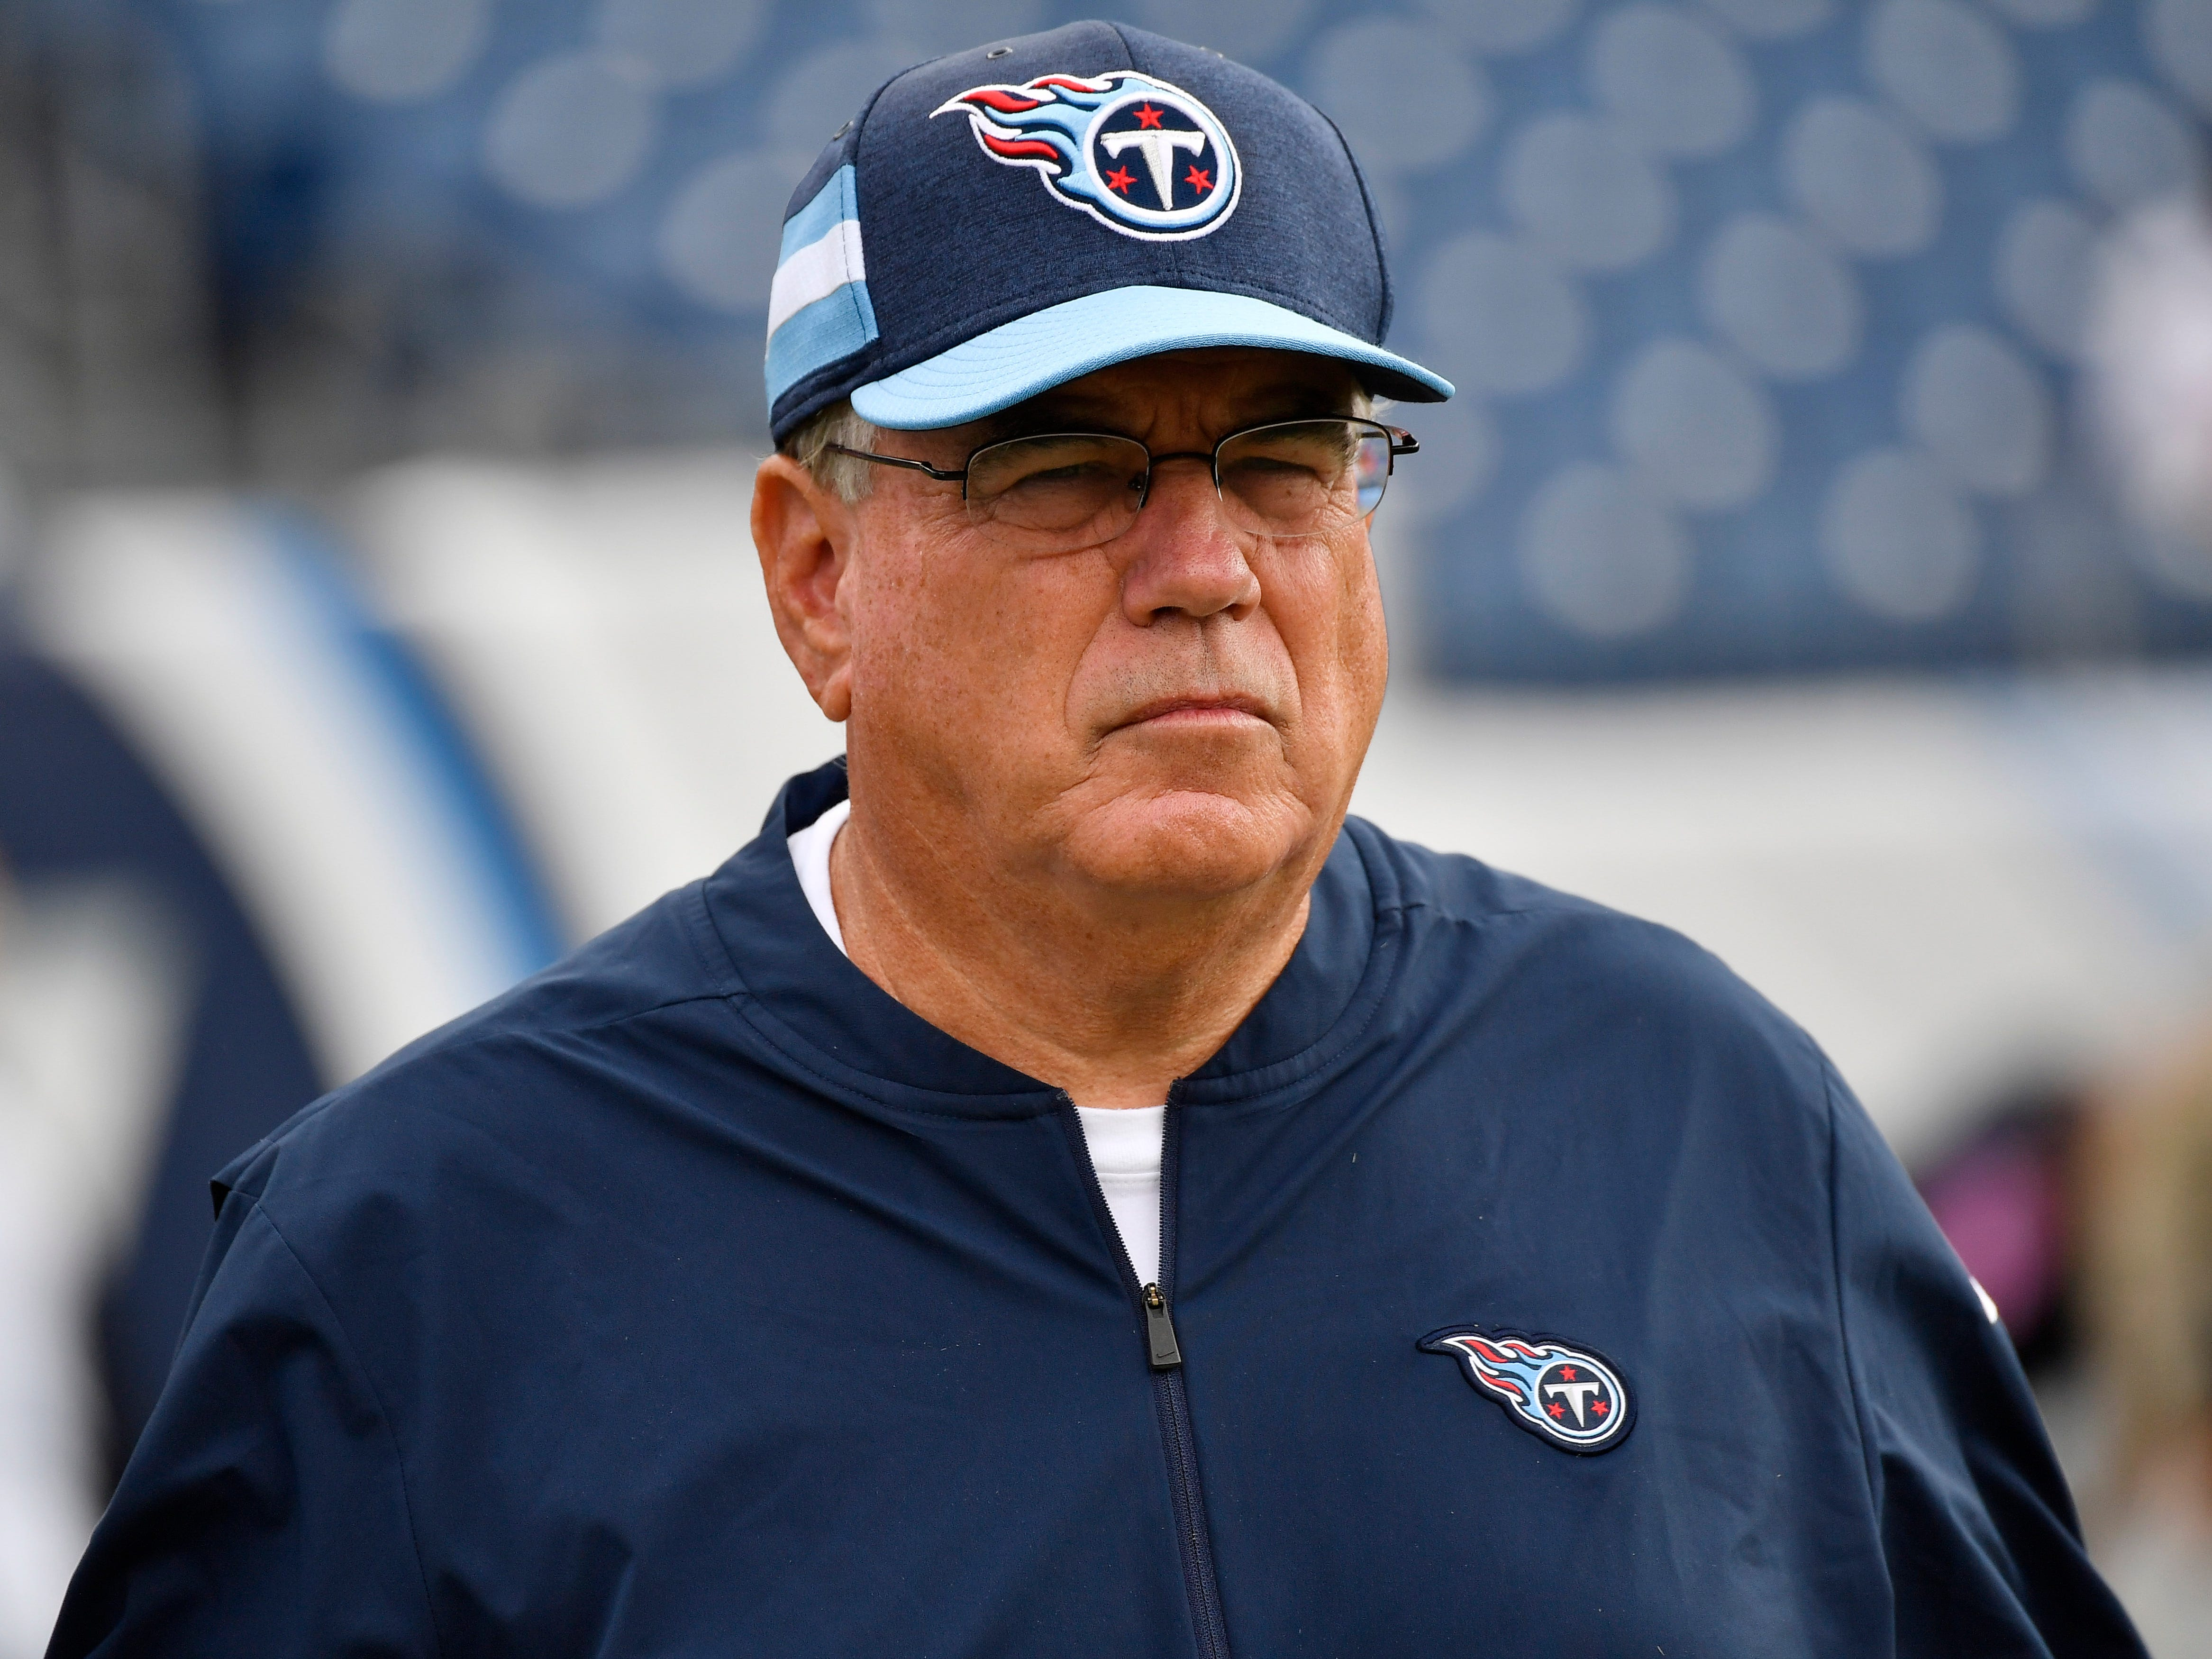 Defensive coordinator Dean Pees watches the Titans warm up before the game against the Texans at Nissan Stadium Sunday, Sept. 16, 2018, in Nashville, Tenn.